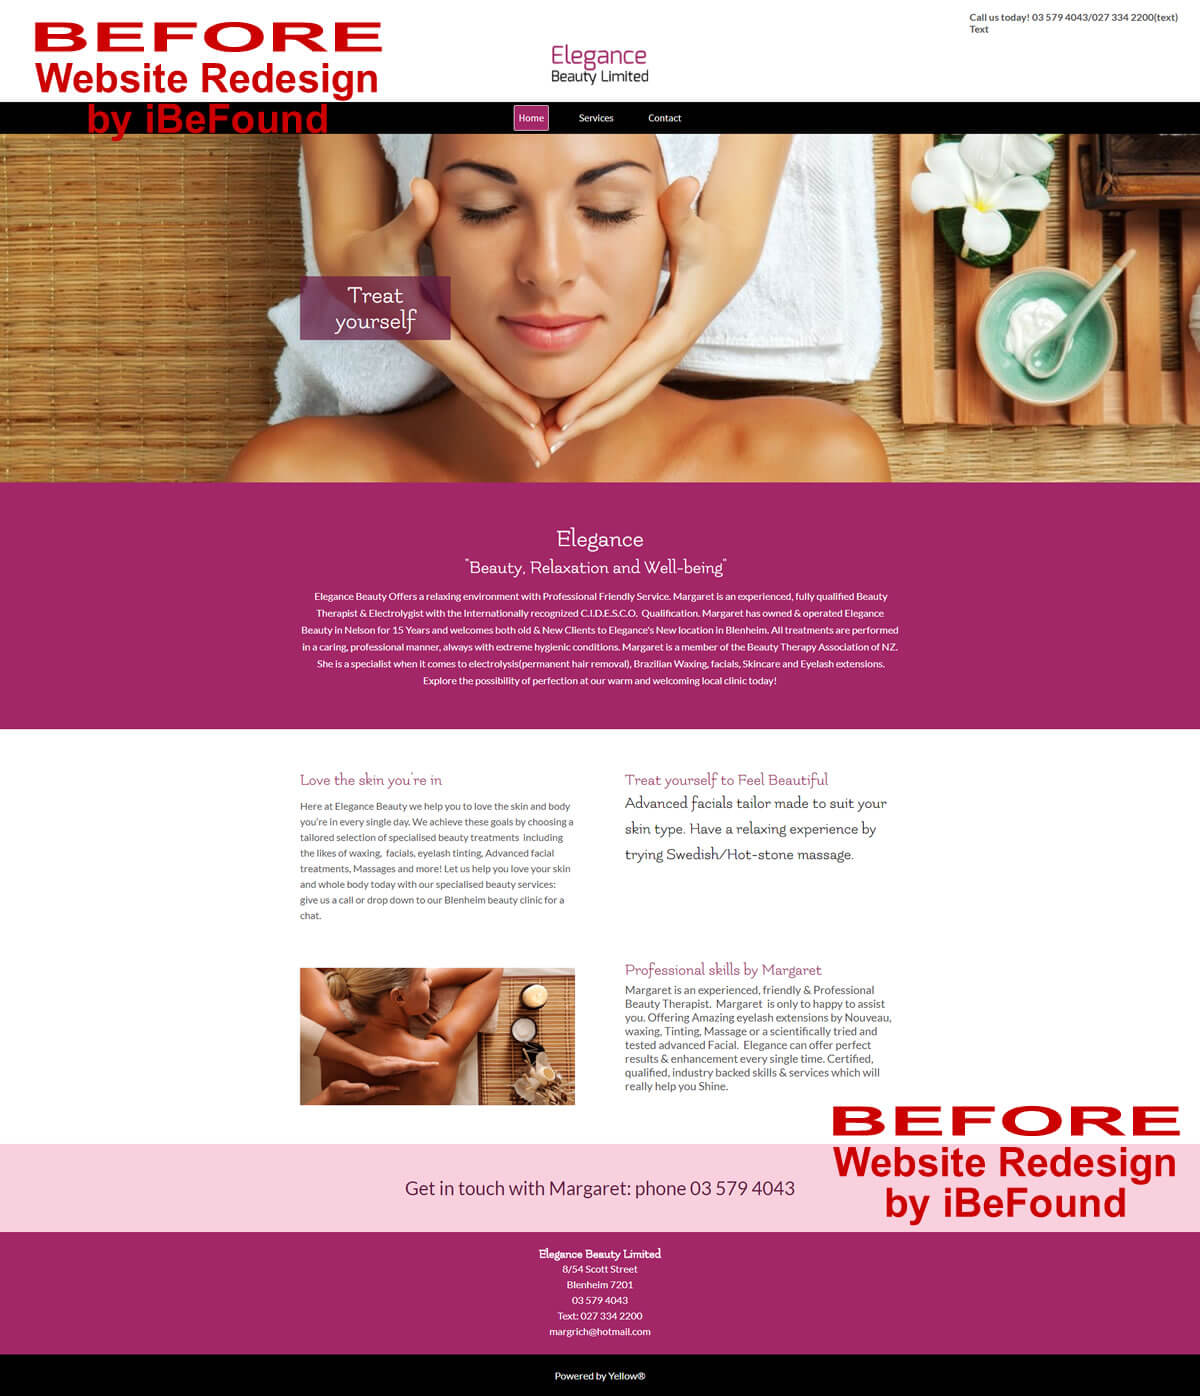 Homepage Of Elegance Beauty Ltd Before Website Redesign By IBeFound Digital Marketing Division In Marlborough